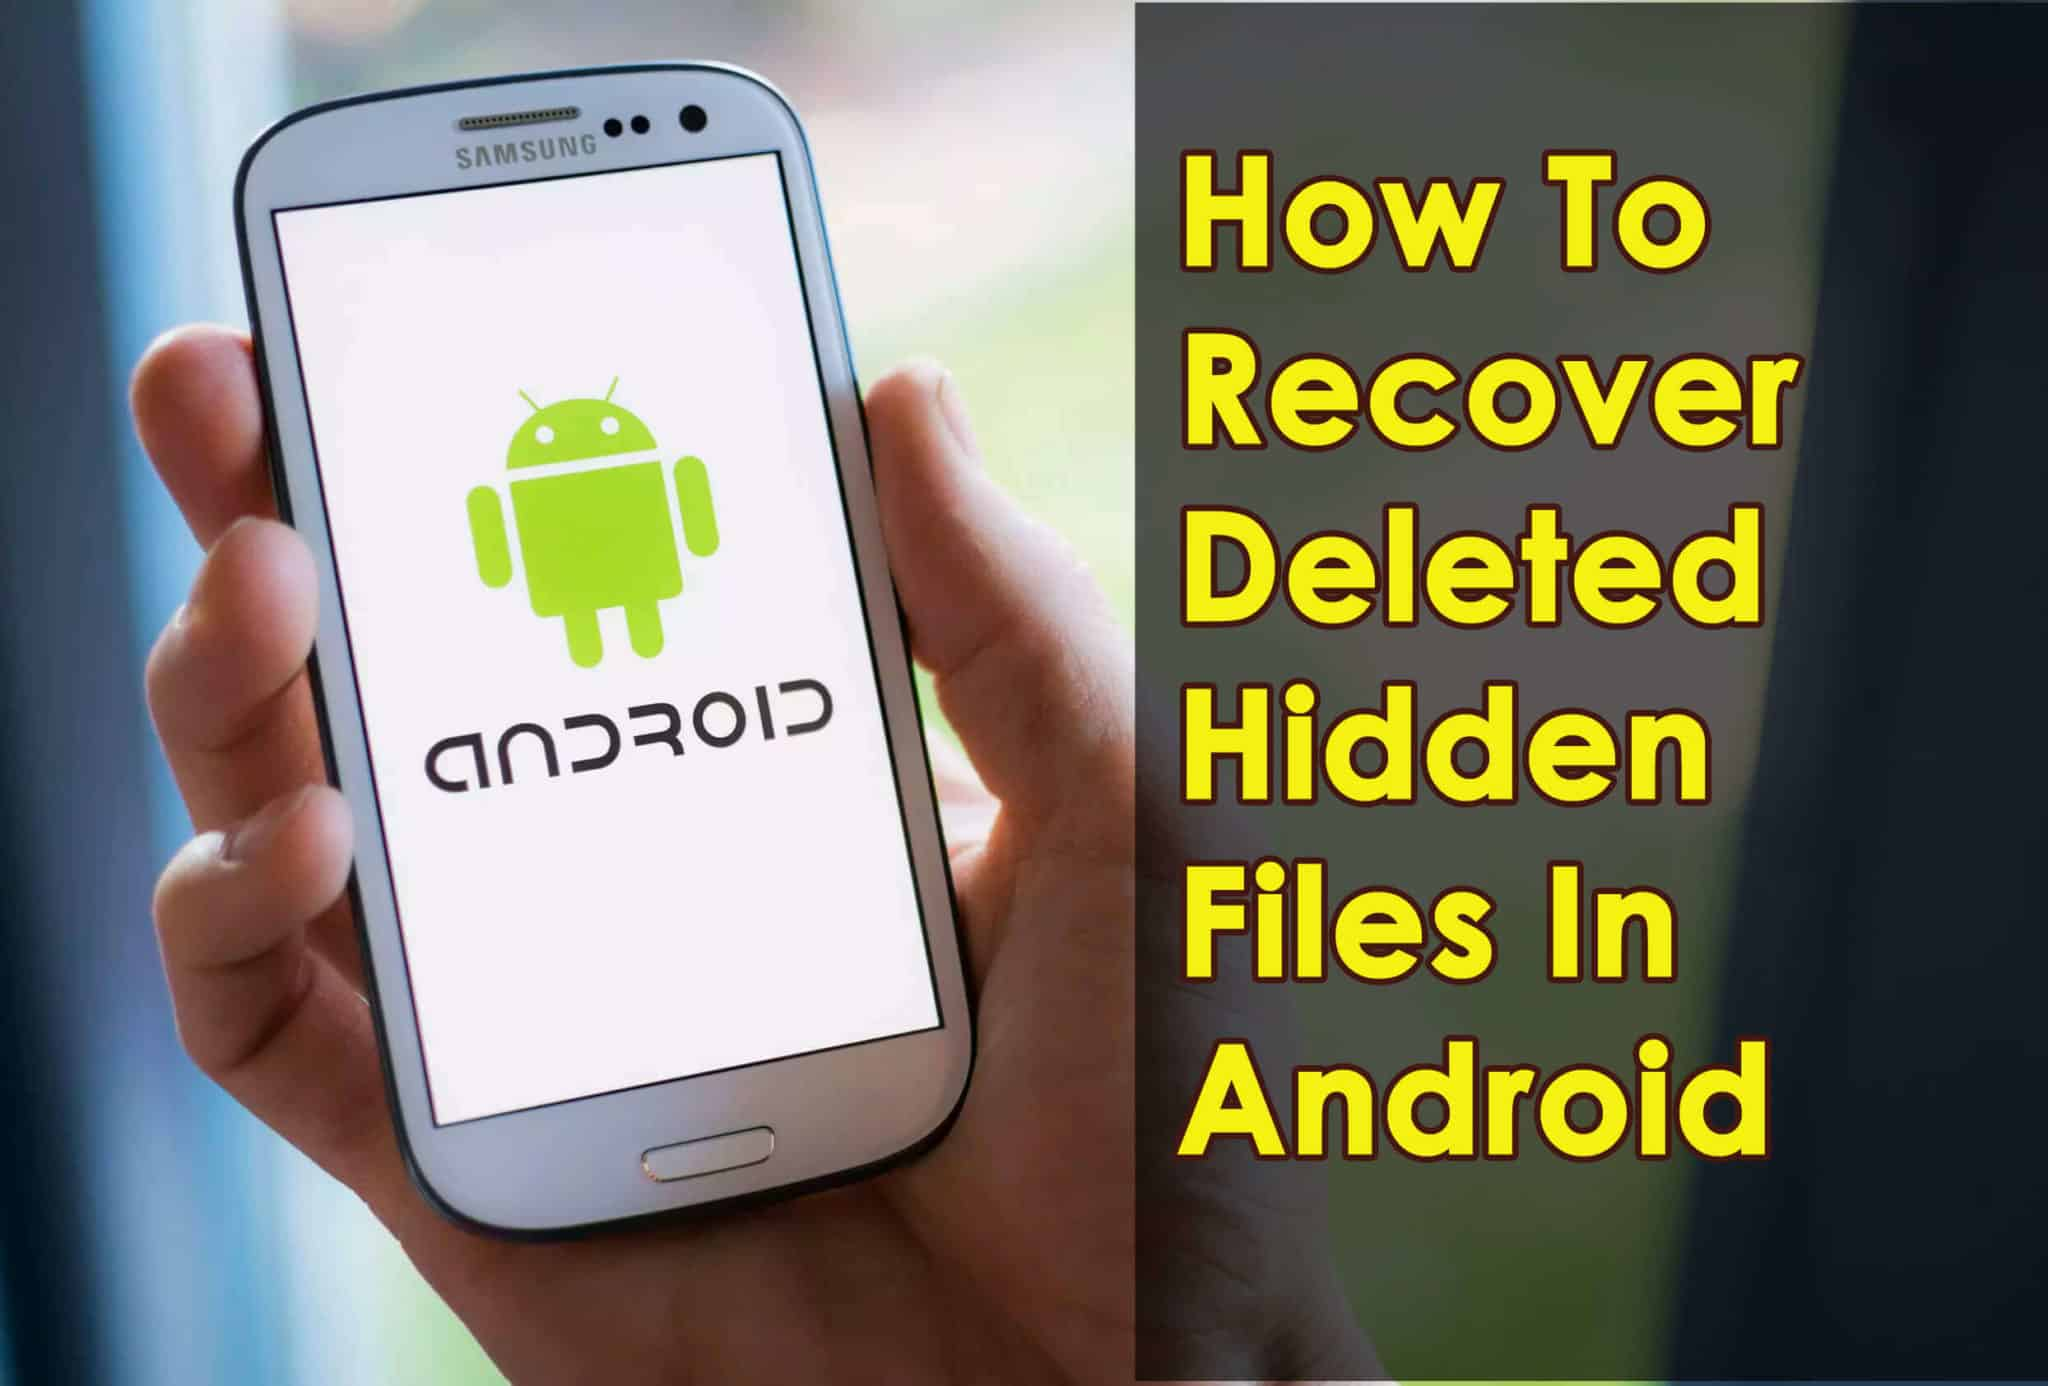 Recover Deleted Hidden Files In Android